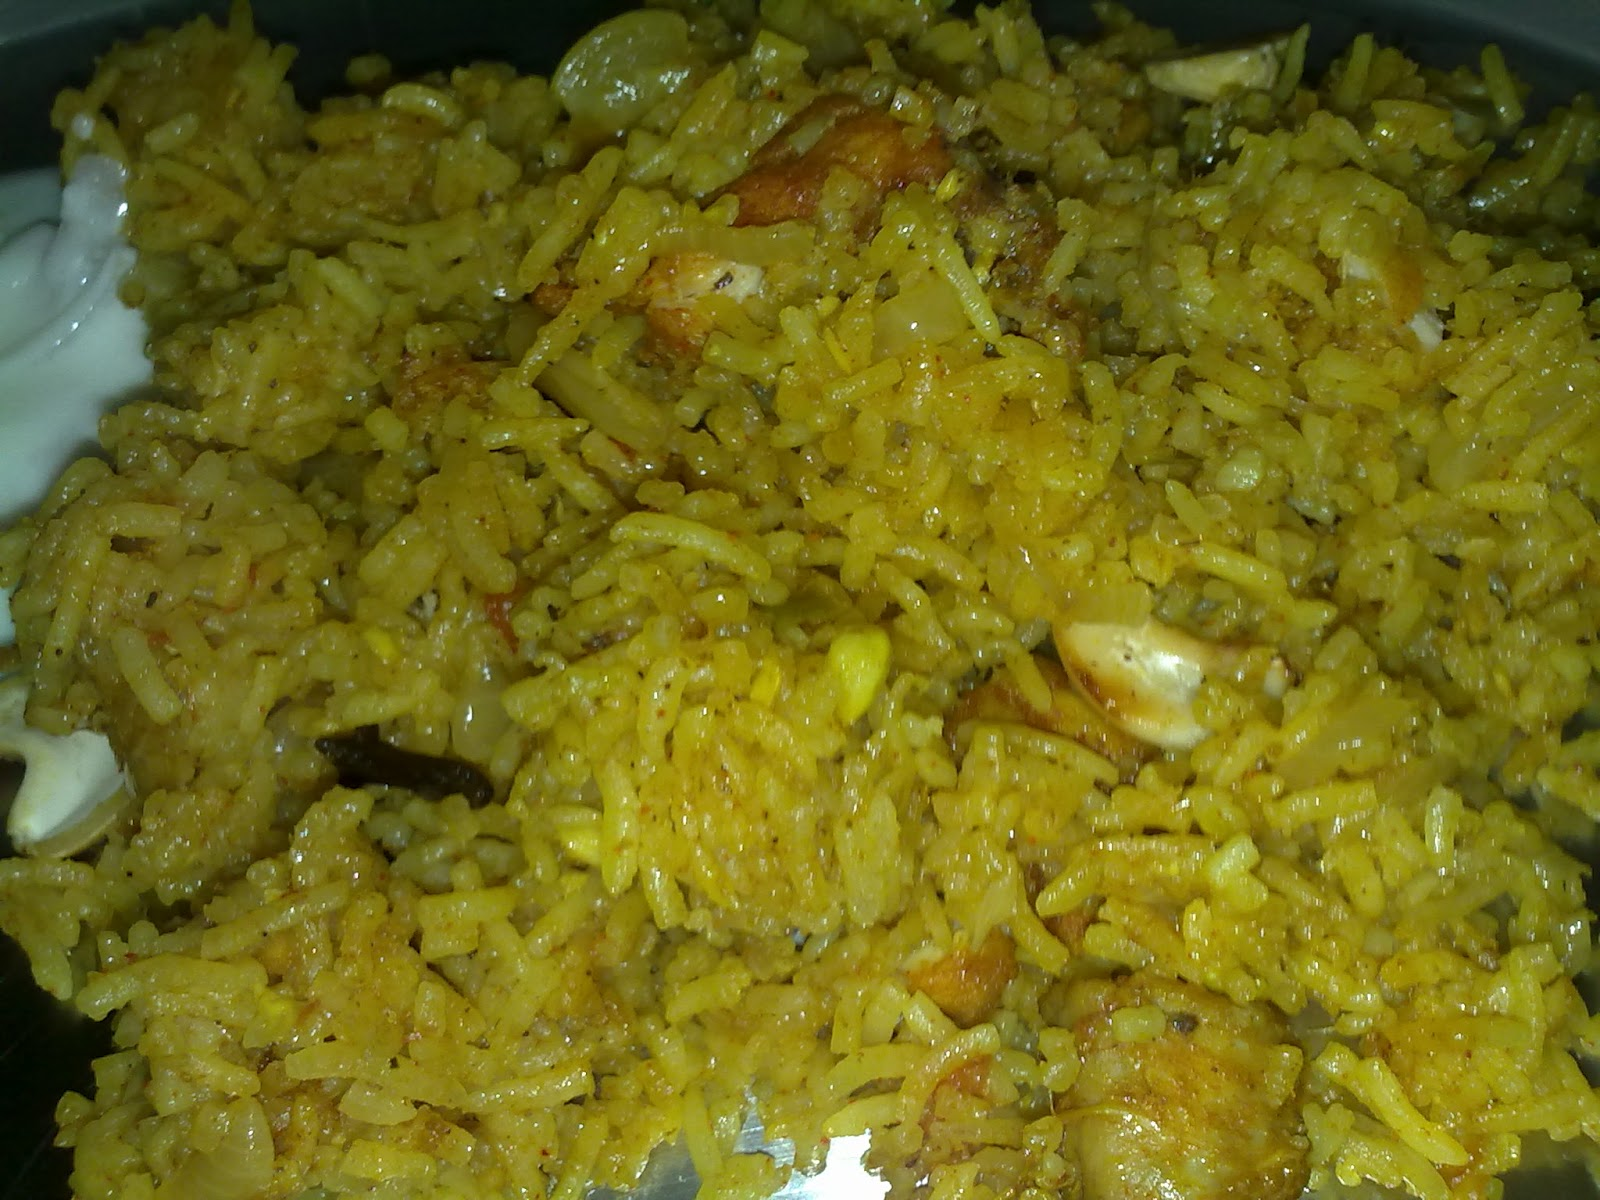 Kerala thani nadan foods majboos arabic chicken biryani hot majboos is ready to serve with vegetable salad and pappad forumfinder Image collections